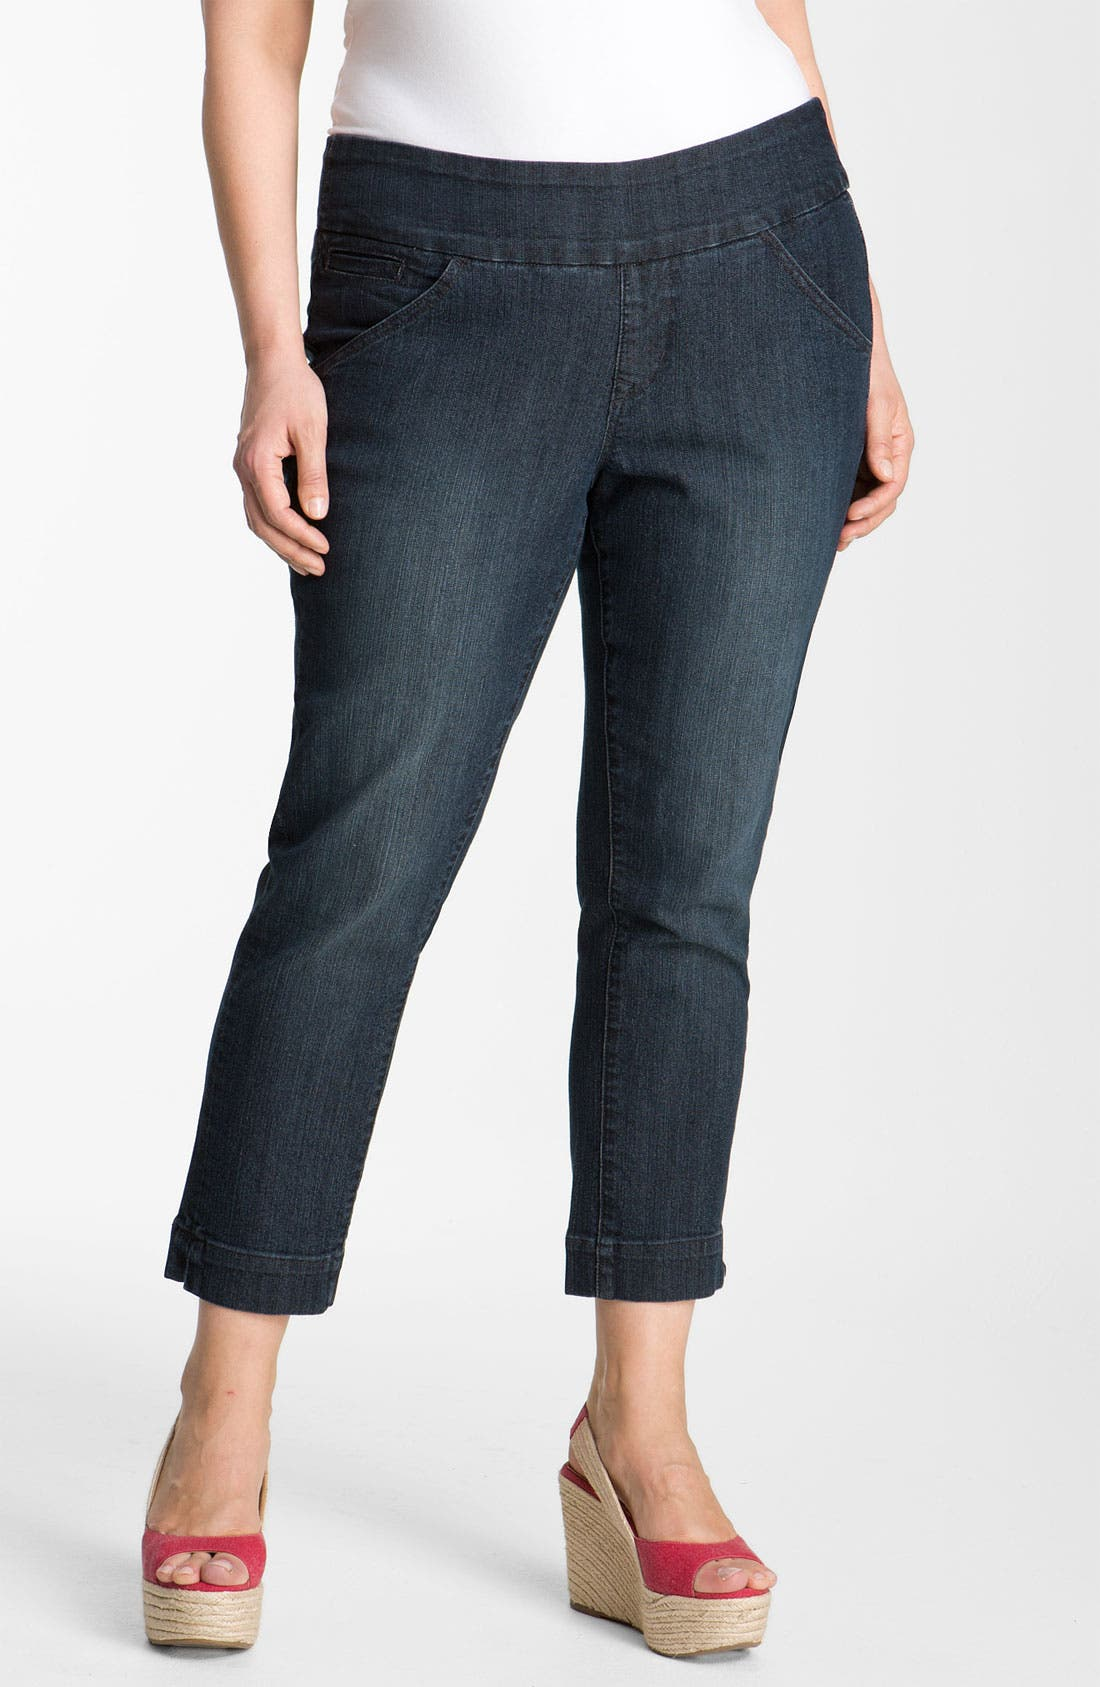 Alternate Image 1 Selected - Jag Jeans 'Attie' Slim Ankle Jeans (Plus)